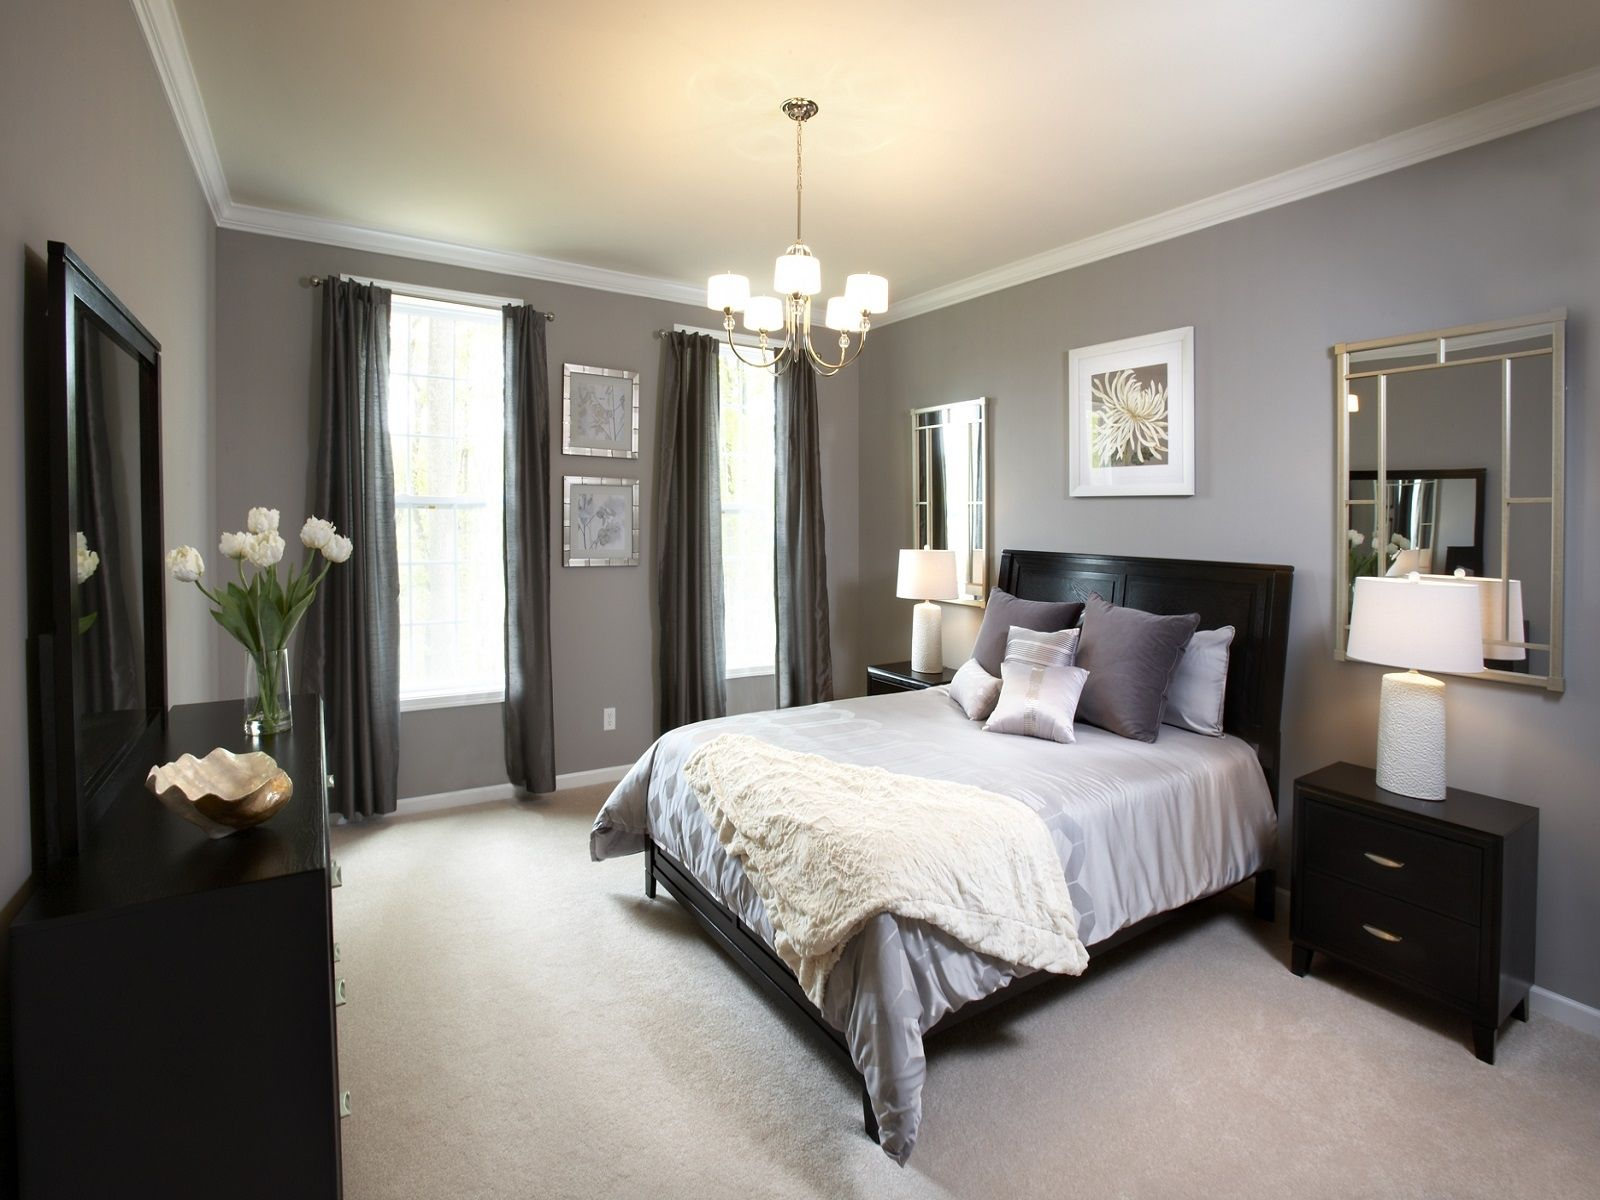 Brilliant Decorating Bedroom Ideas With Black Bed And Dark Dresser     Brilliant Decorating Bedroom Ideas With Black Bed And Dark Dresser Near  Grey Painted Wall